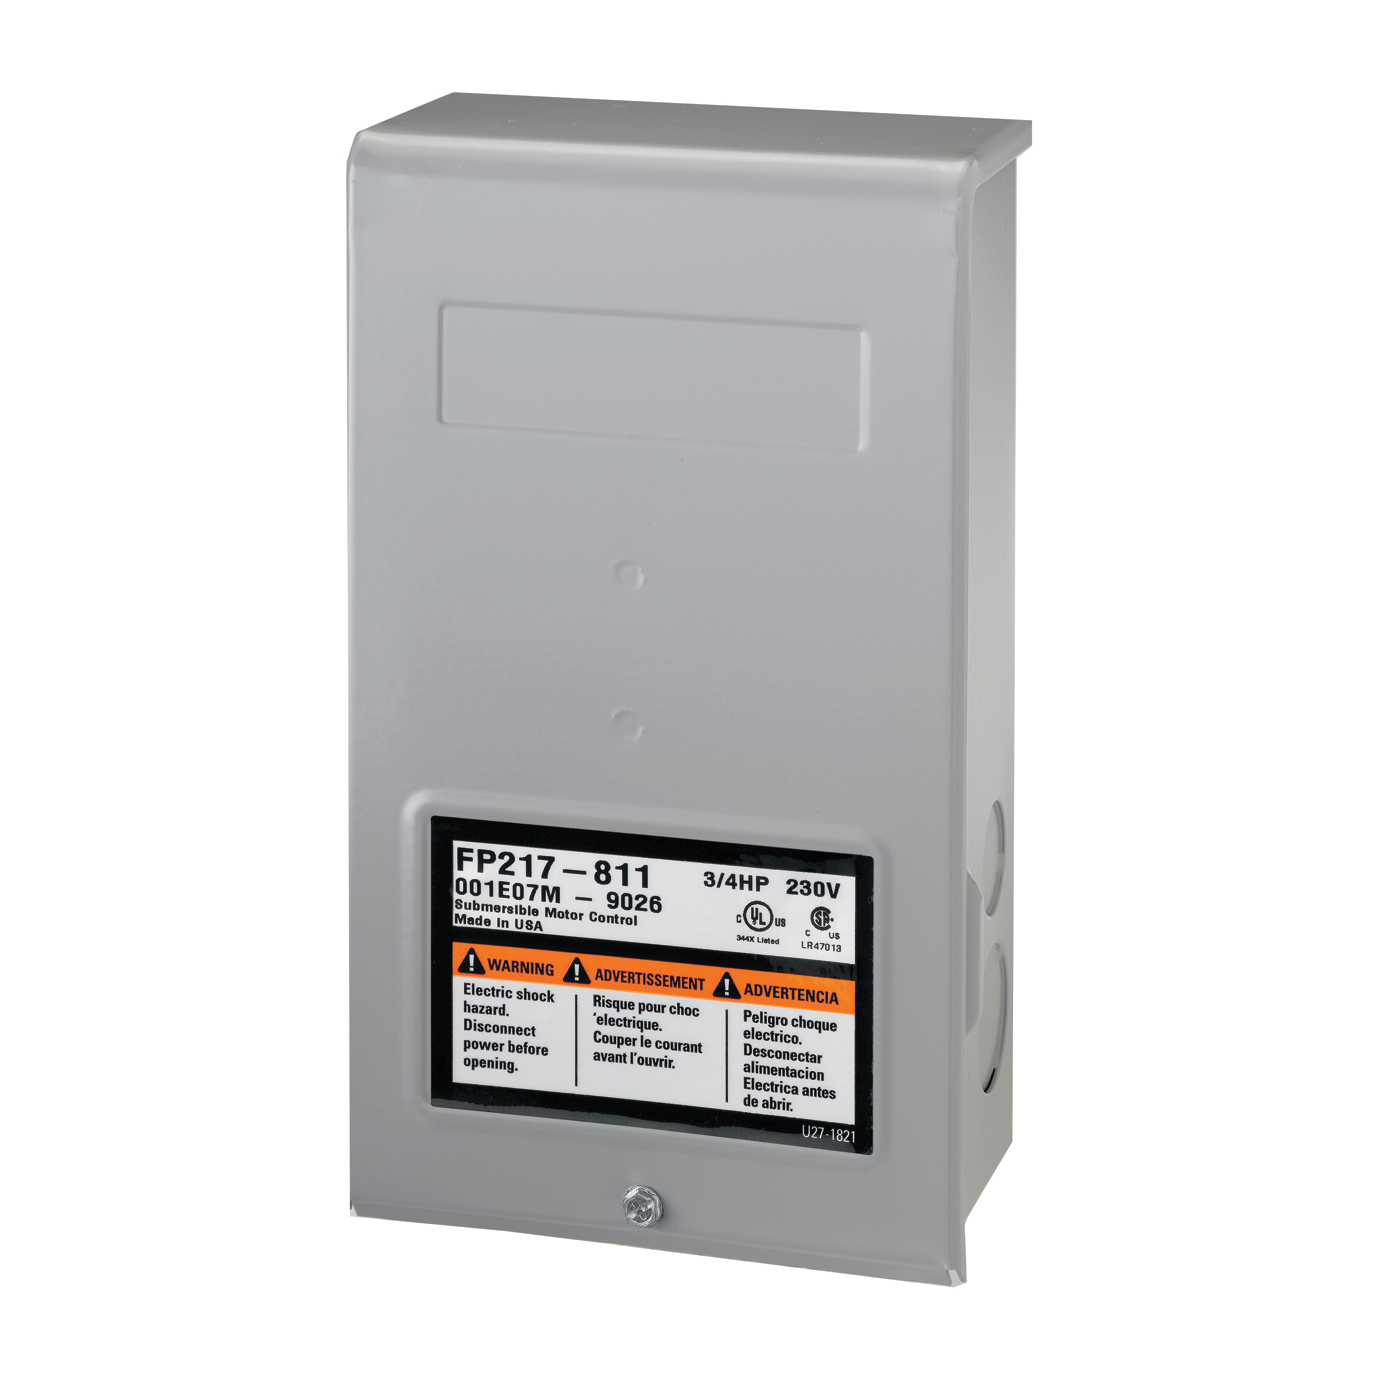 Picture of Flotec FP217-810 Control Box, 230 V, 0.5 hp, 3-Wire, Multiple Size Electrical Knockout, NEMA 3R Enclosure